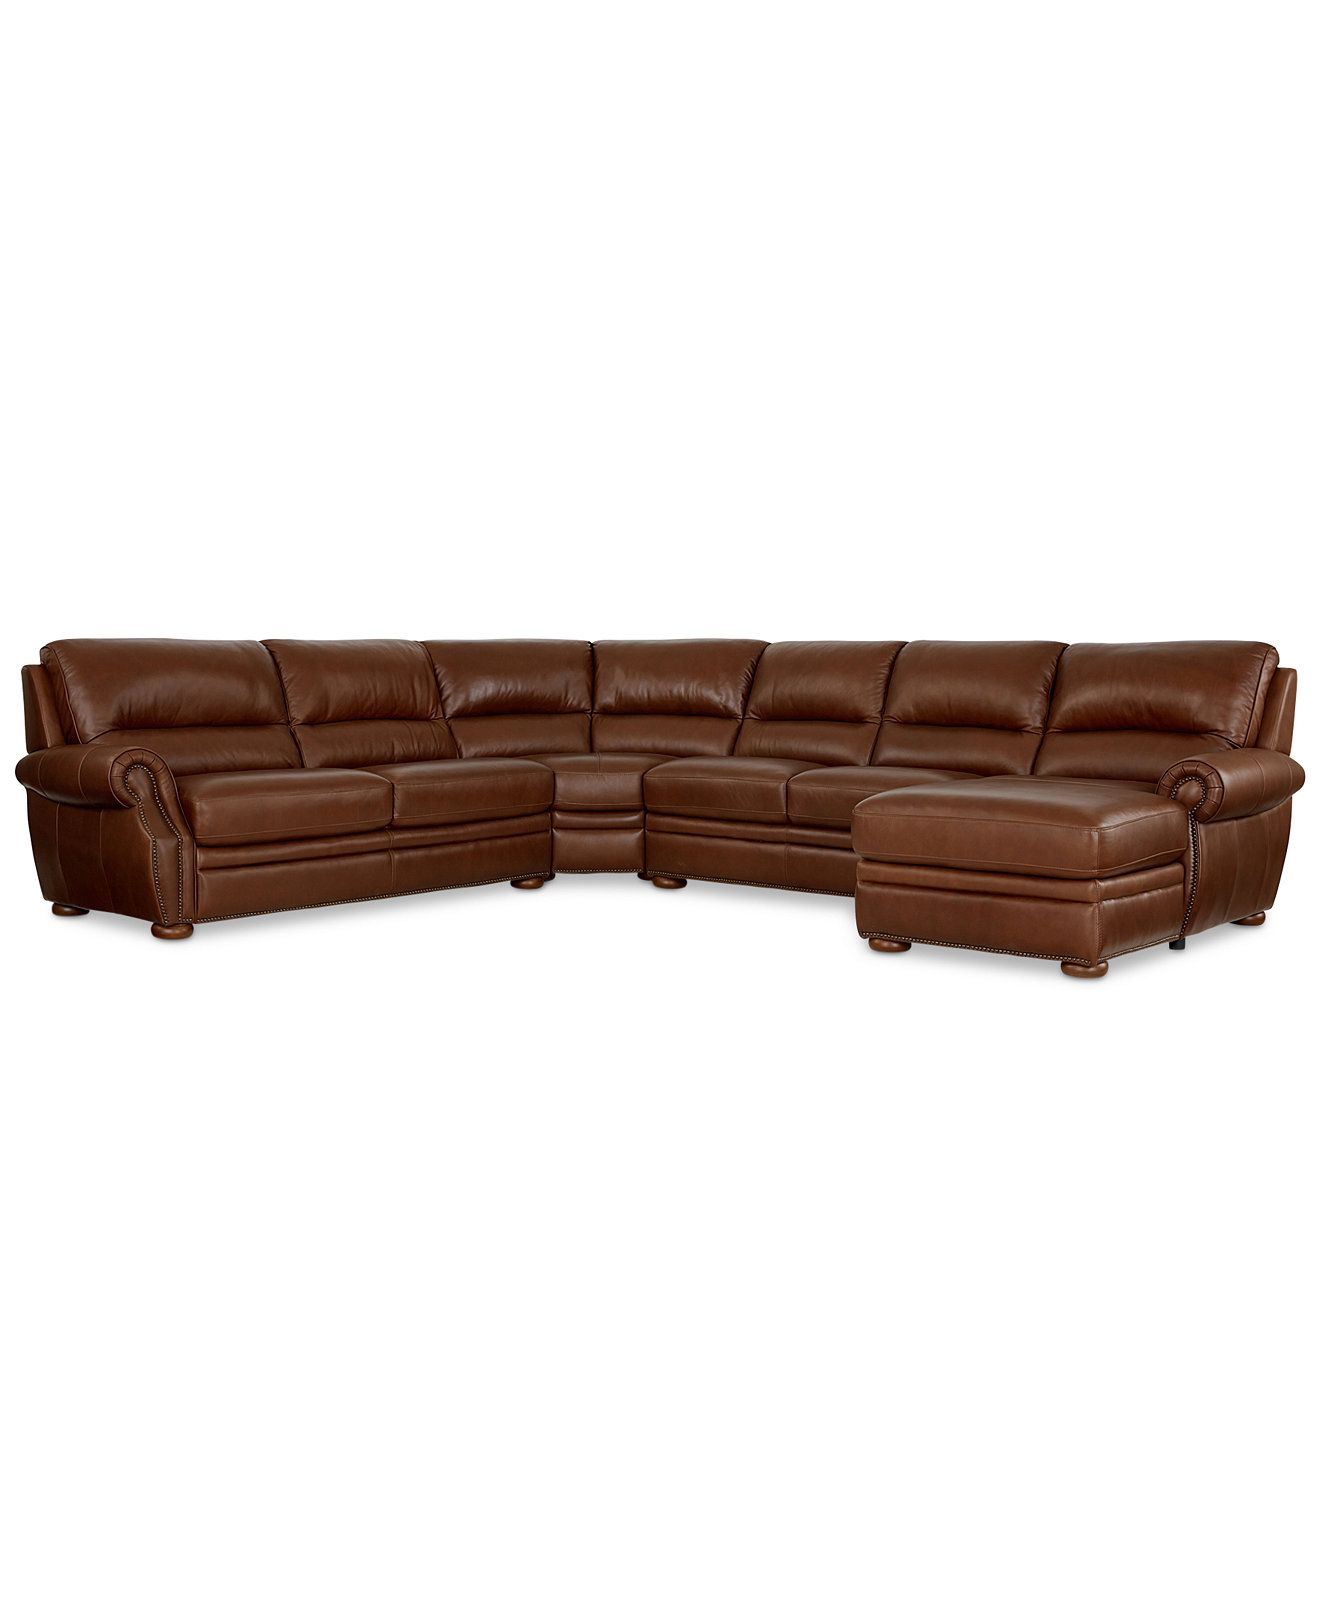 Best Royce Leather 4 Piece Chaise Sectional Sofa Sectional 400 x 300